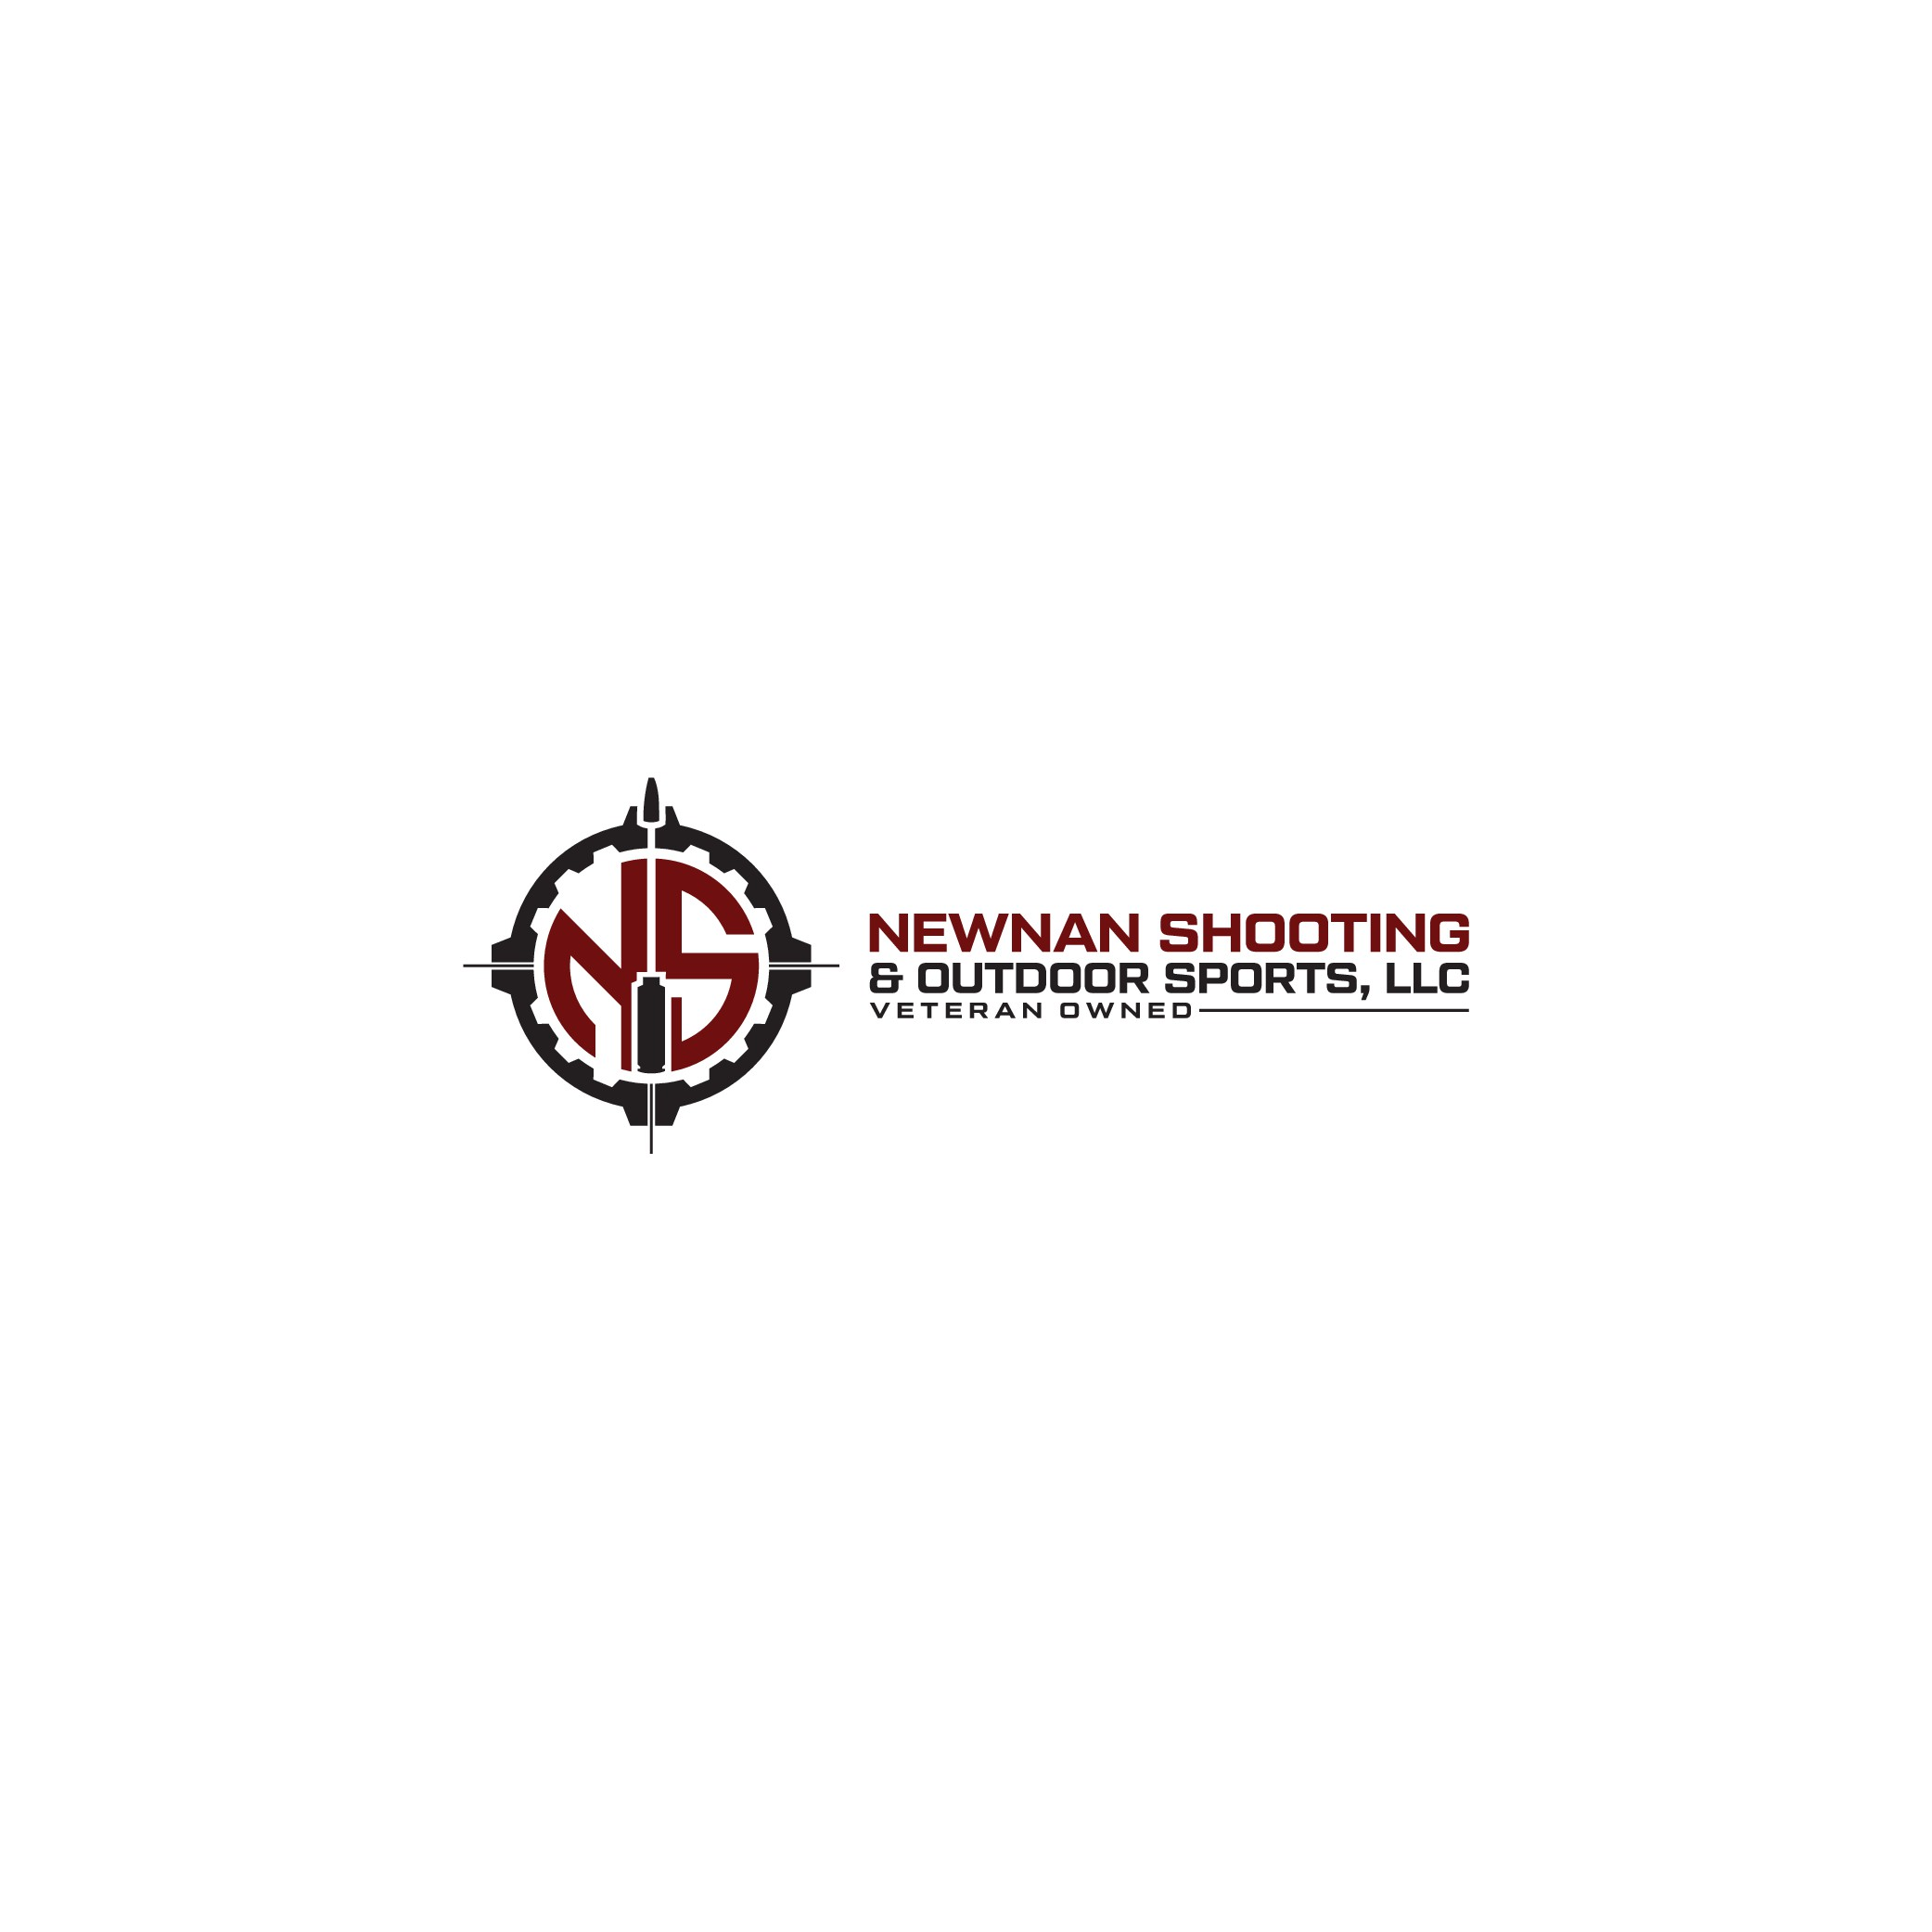 Memorable logo targeting Recreational Shooting and Hunting